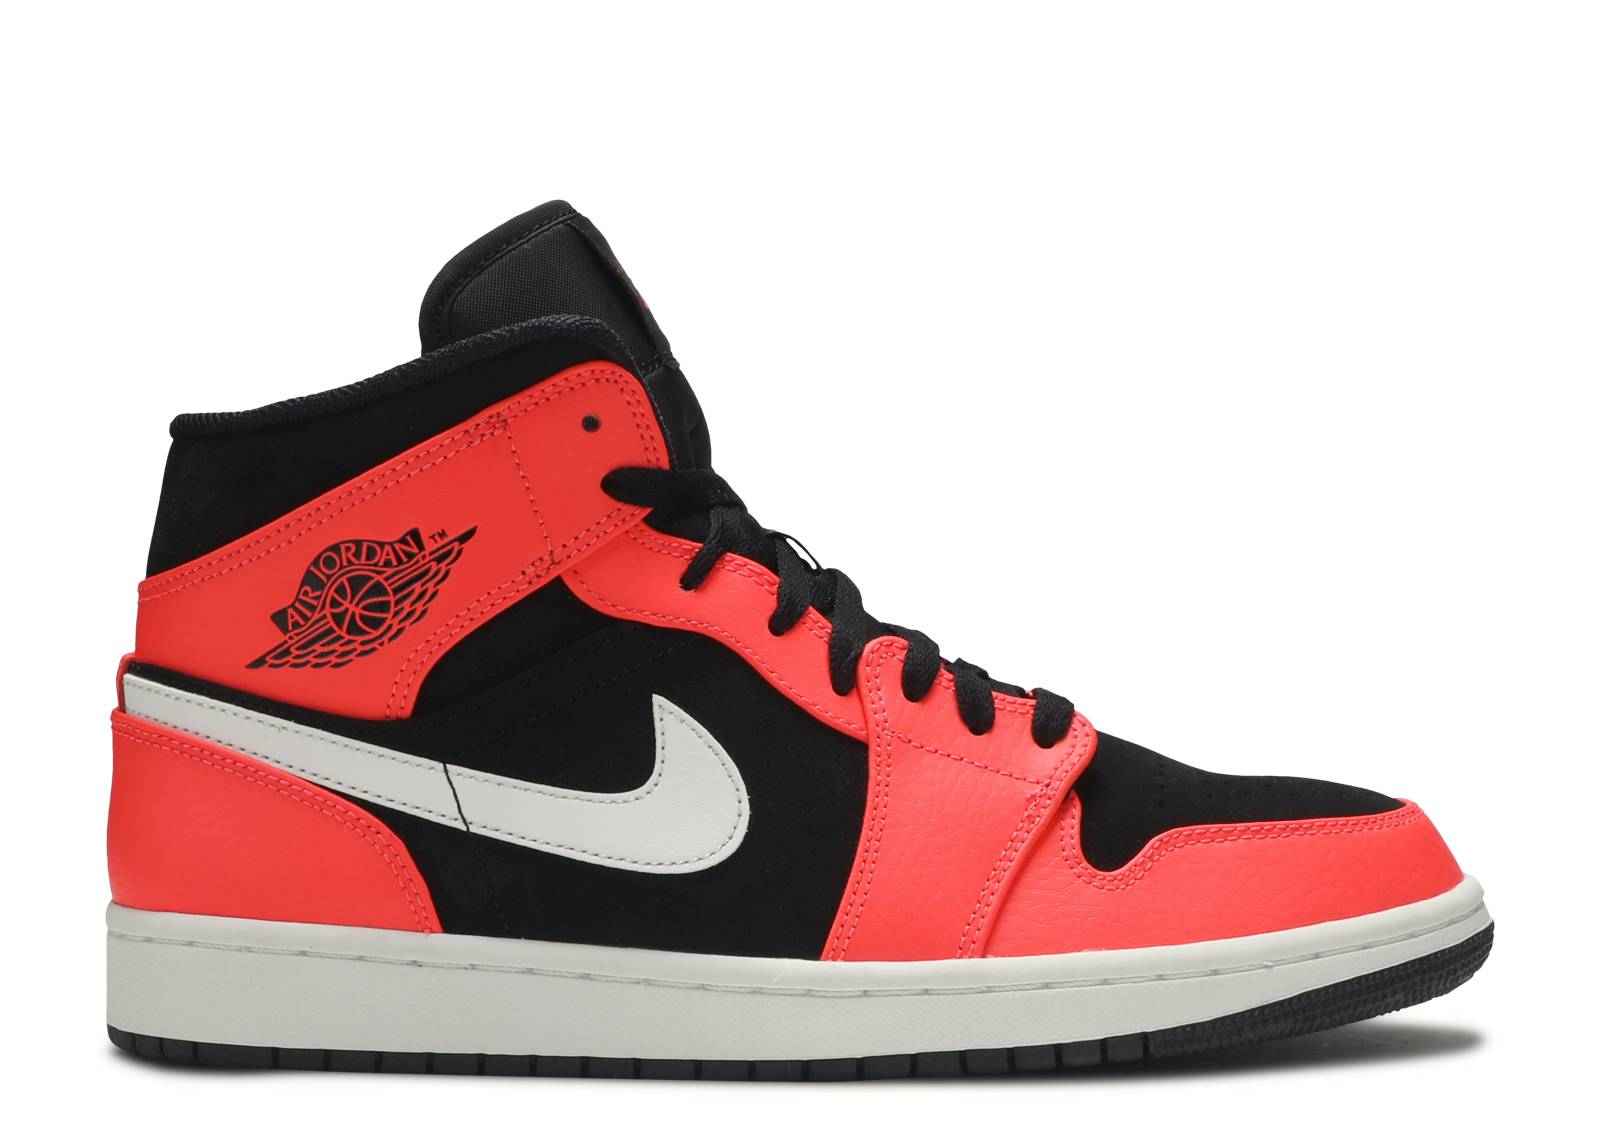 f1e820b47c26 Air Jordan 1 Mid - Air Jordan - 554724 061 - black white infrared ...